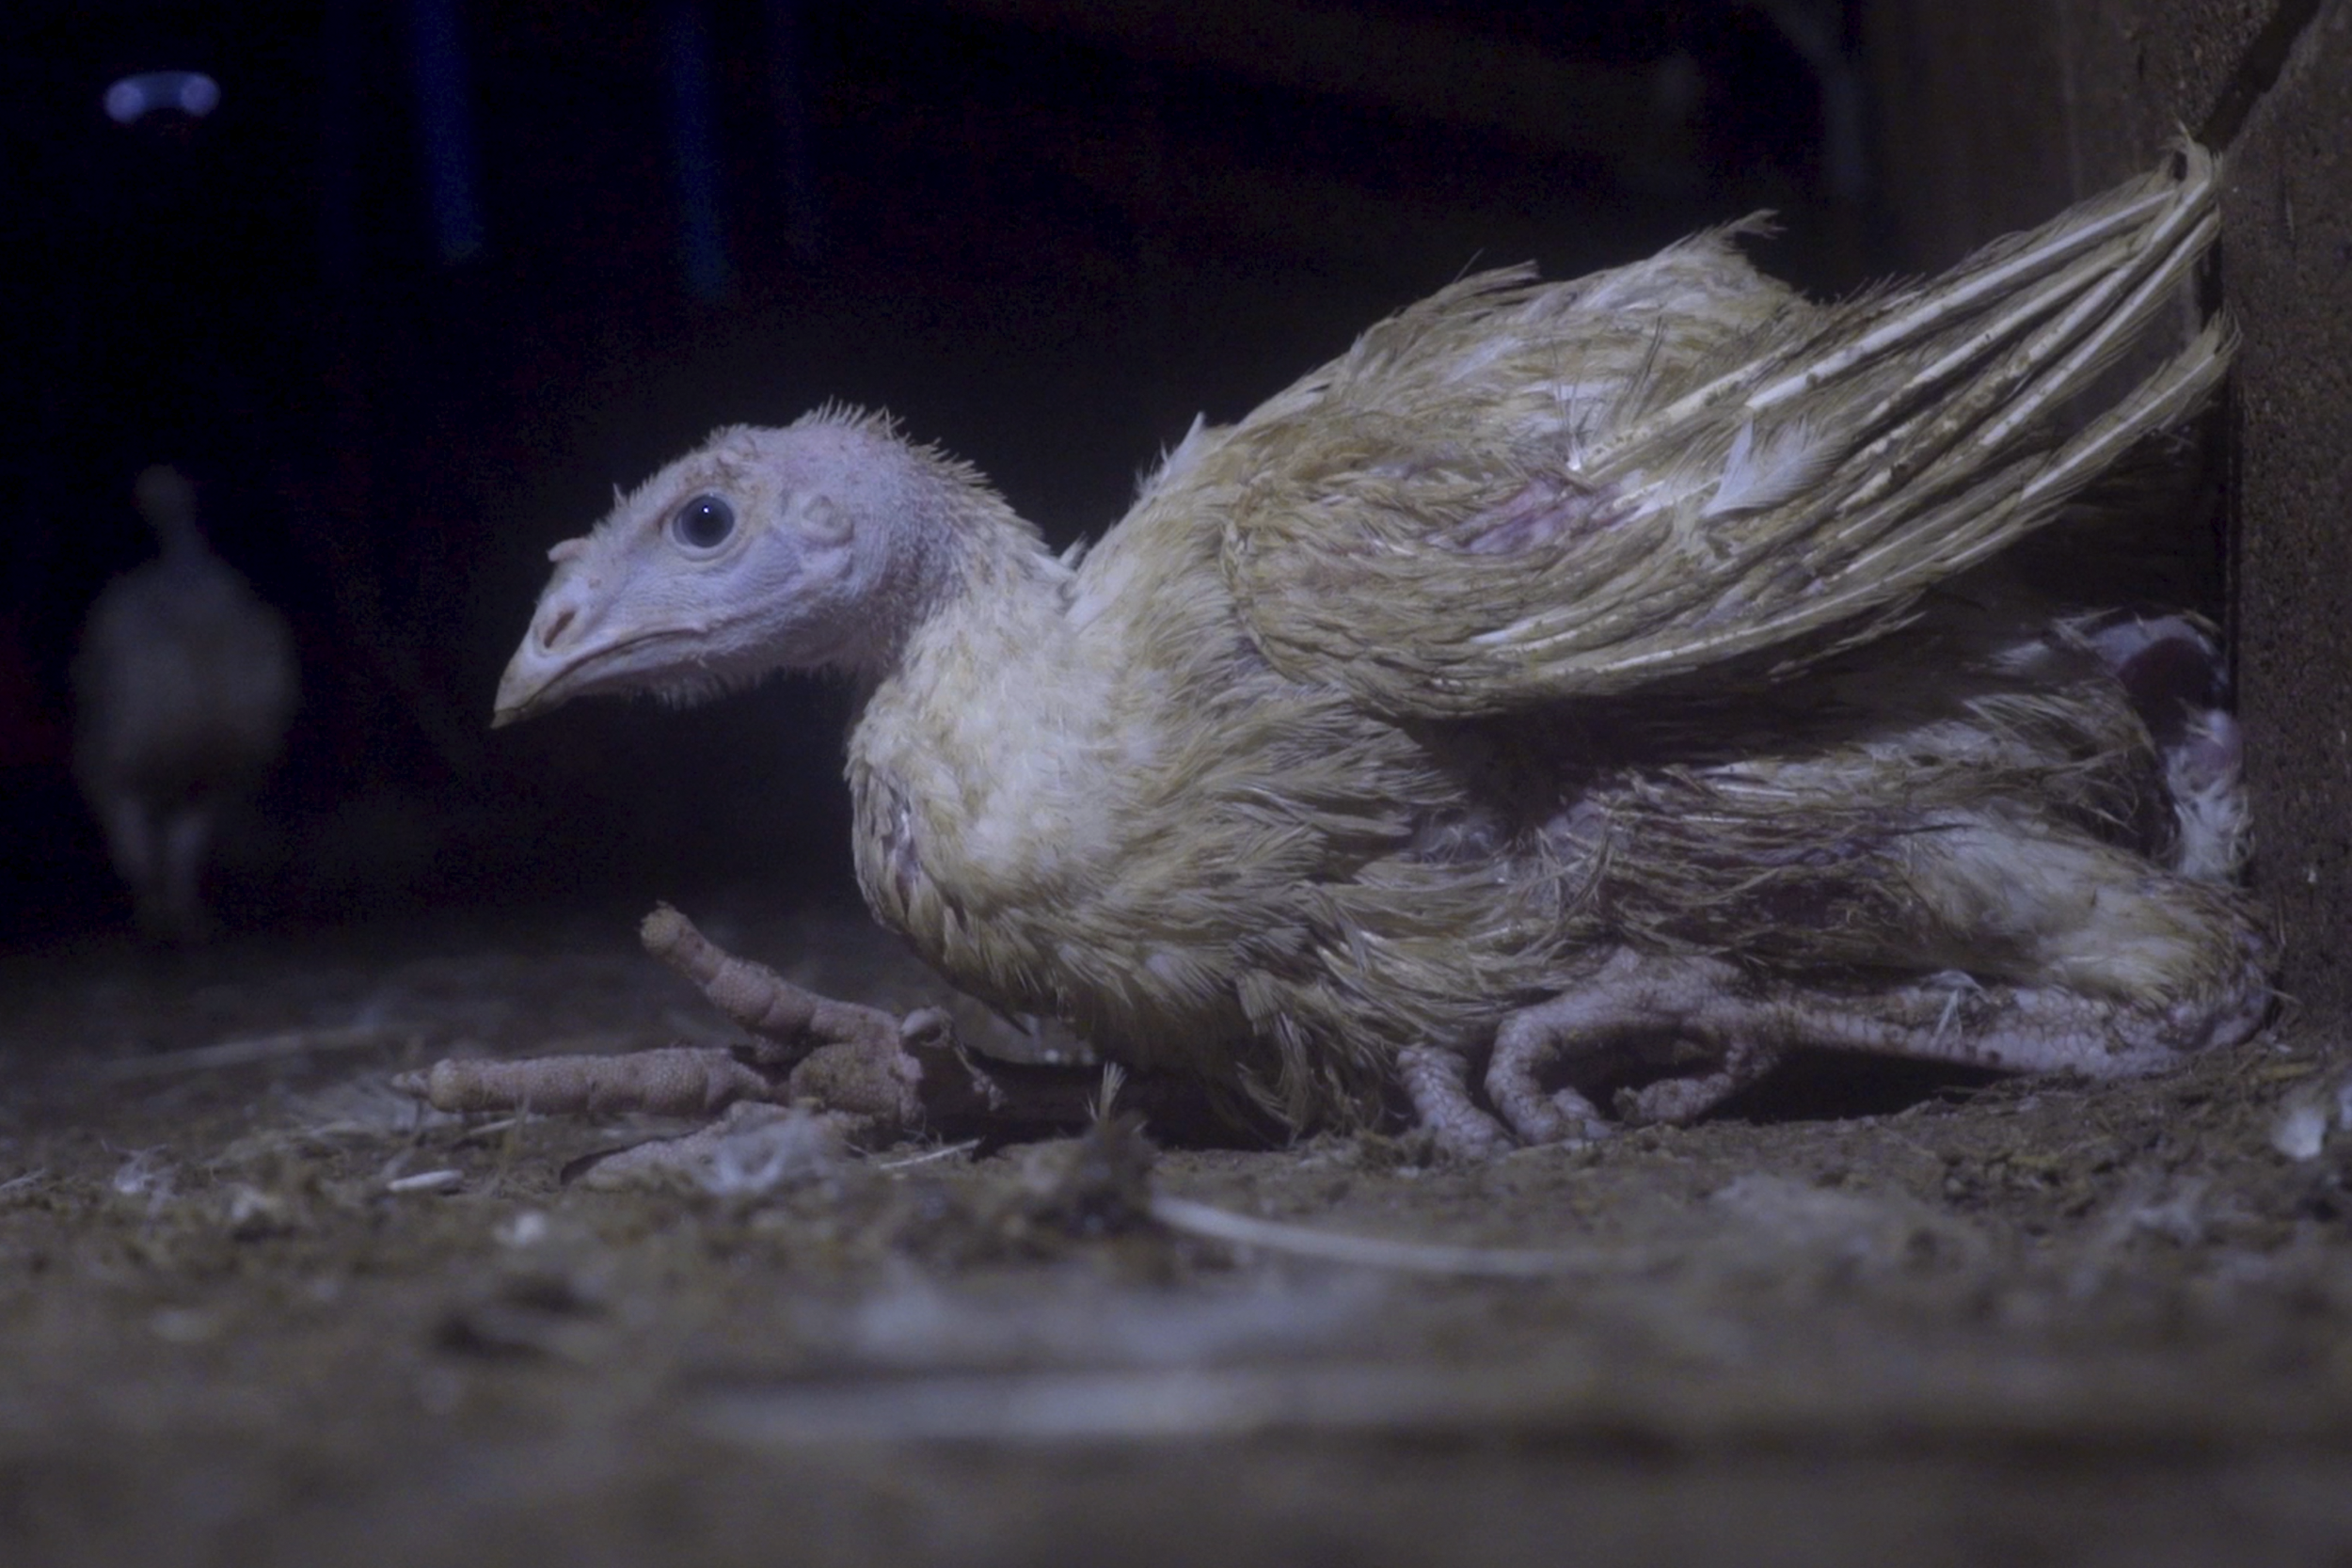 Horrifically Deformed Turkeys Discovered at UK Farm - Meet the victims of your Christmas dinner